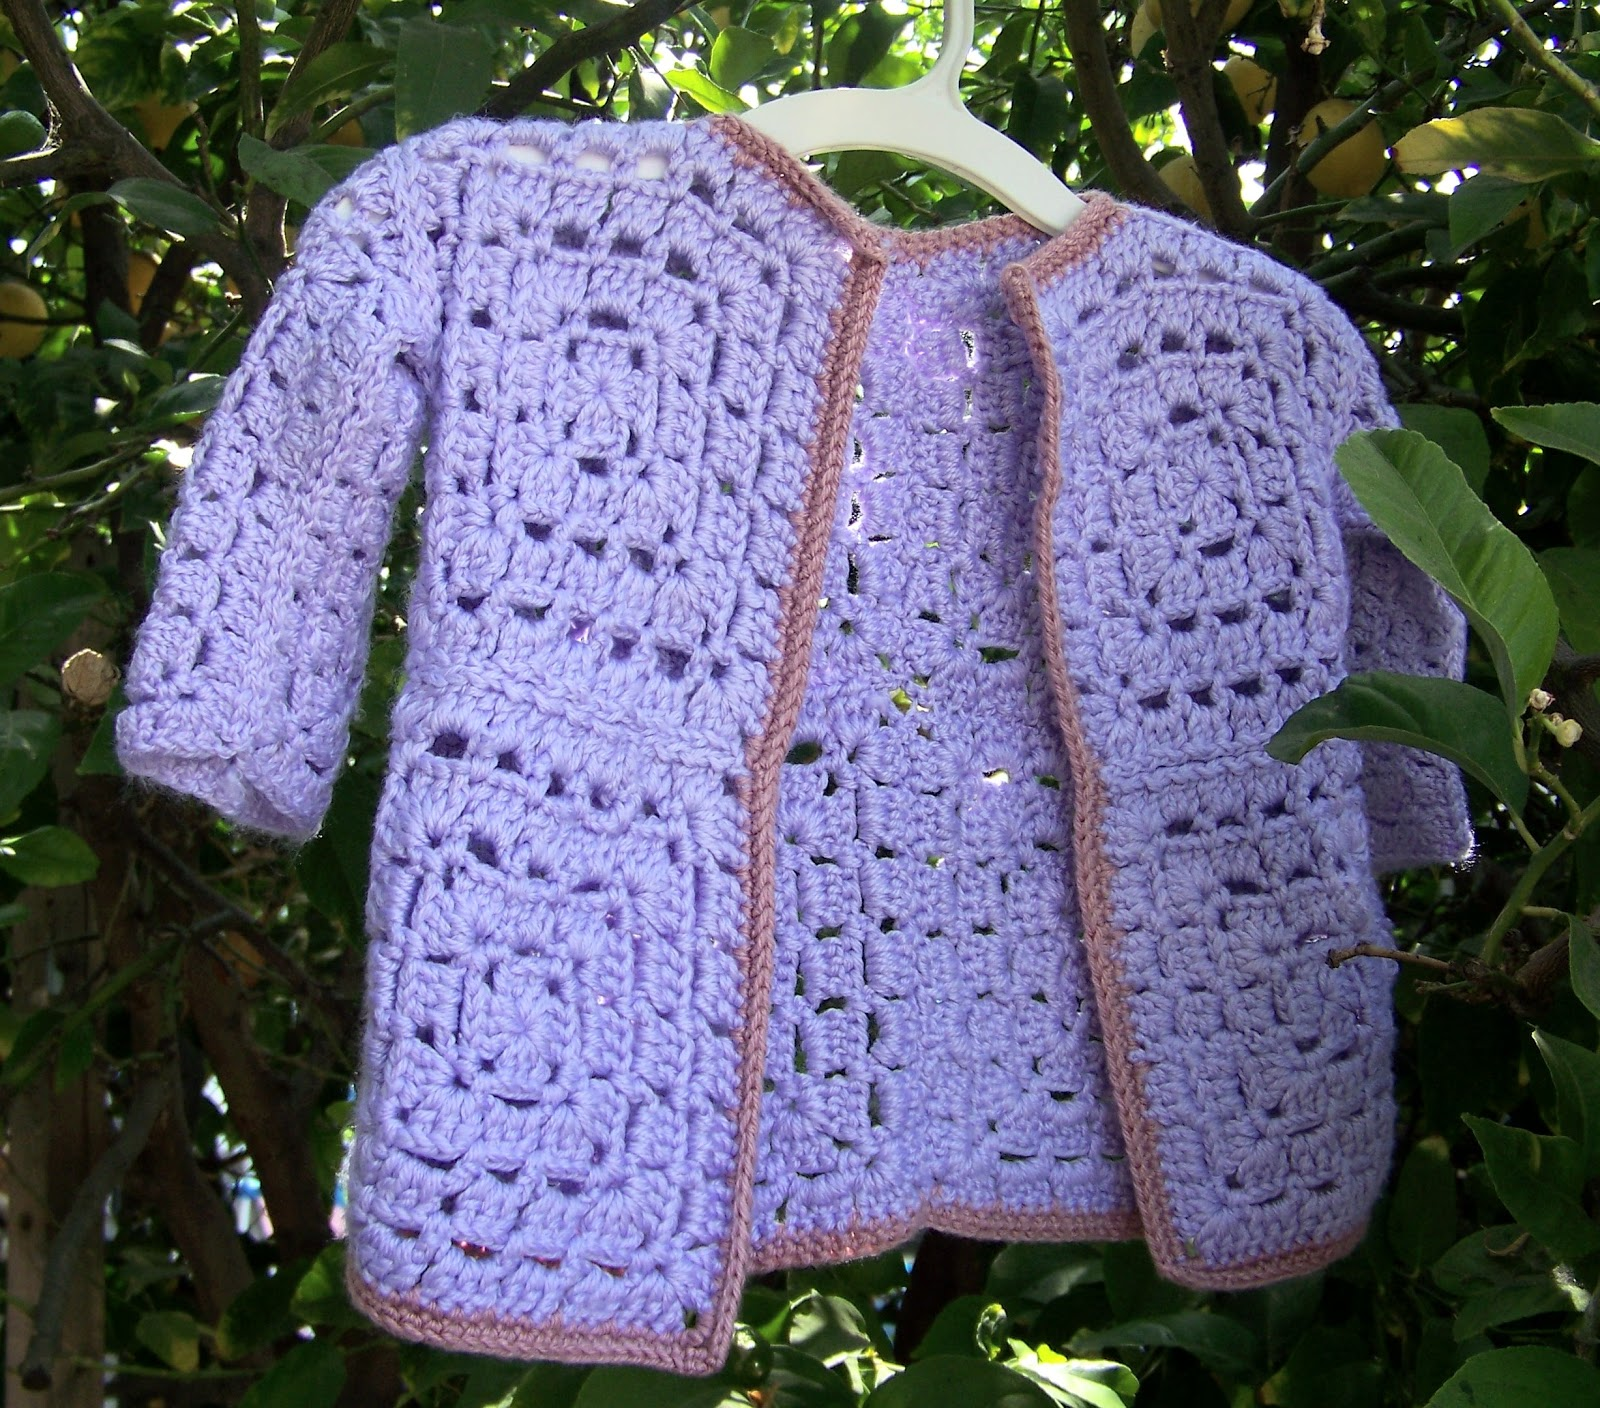 Crochet Granny Square Sweater Pattern : Mis 2 Manos: Made by My Hands: Granny Square Baby Sweater ...